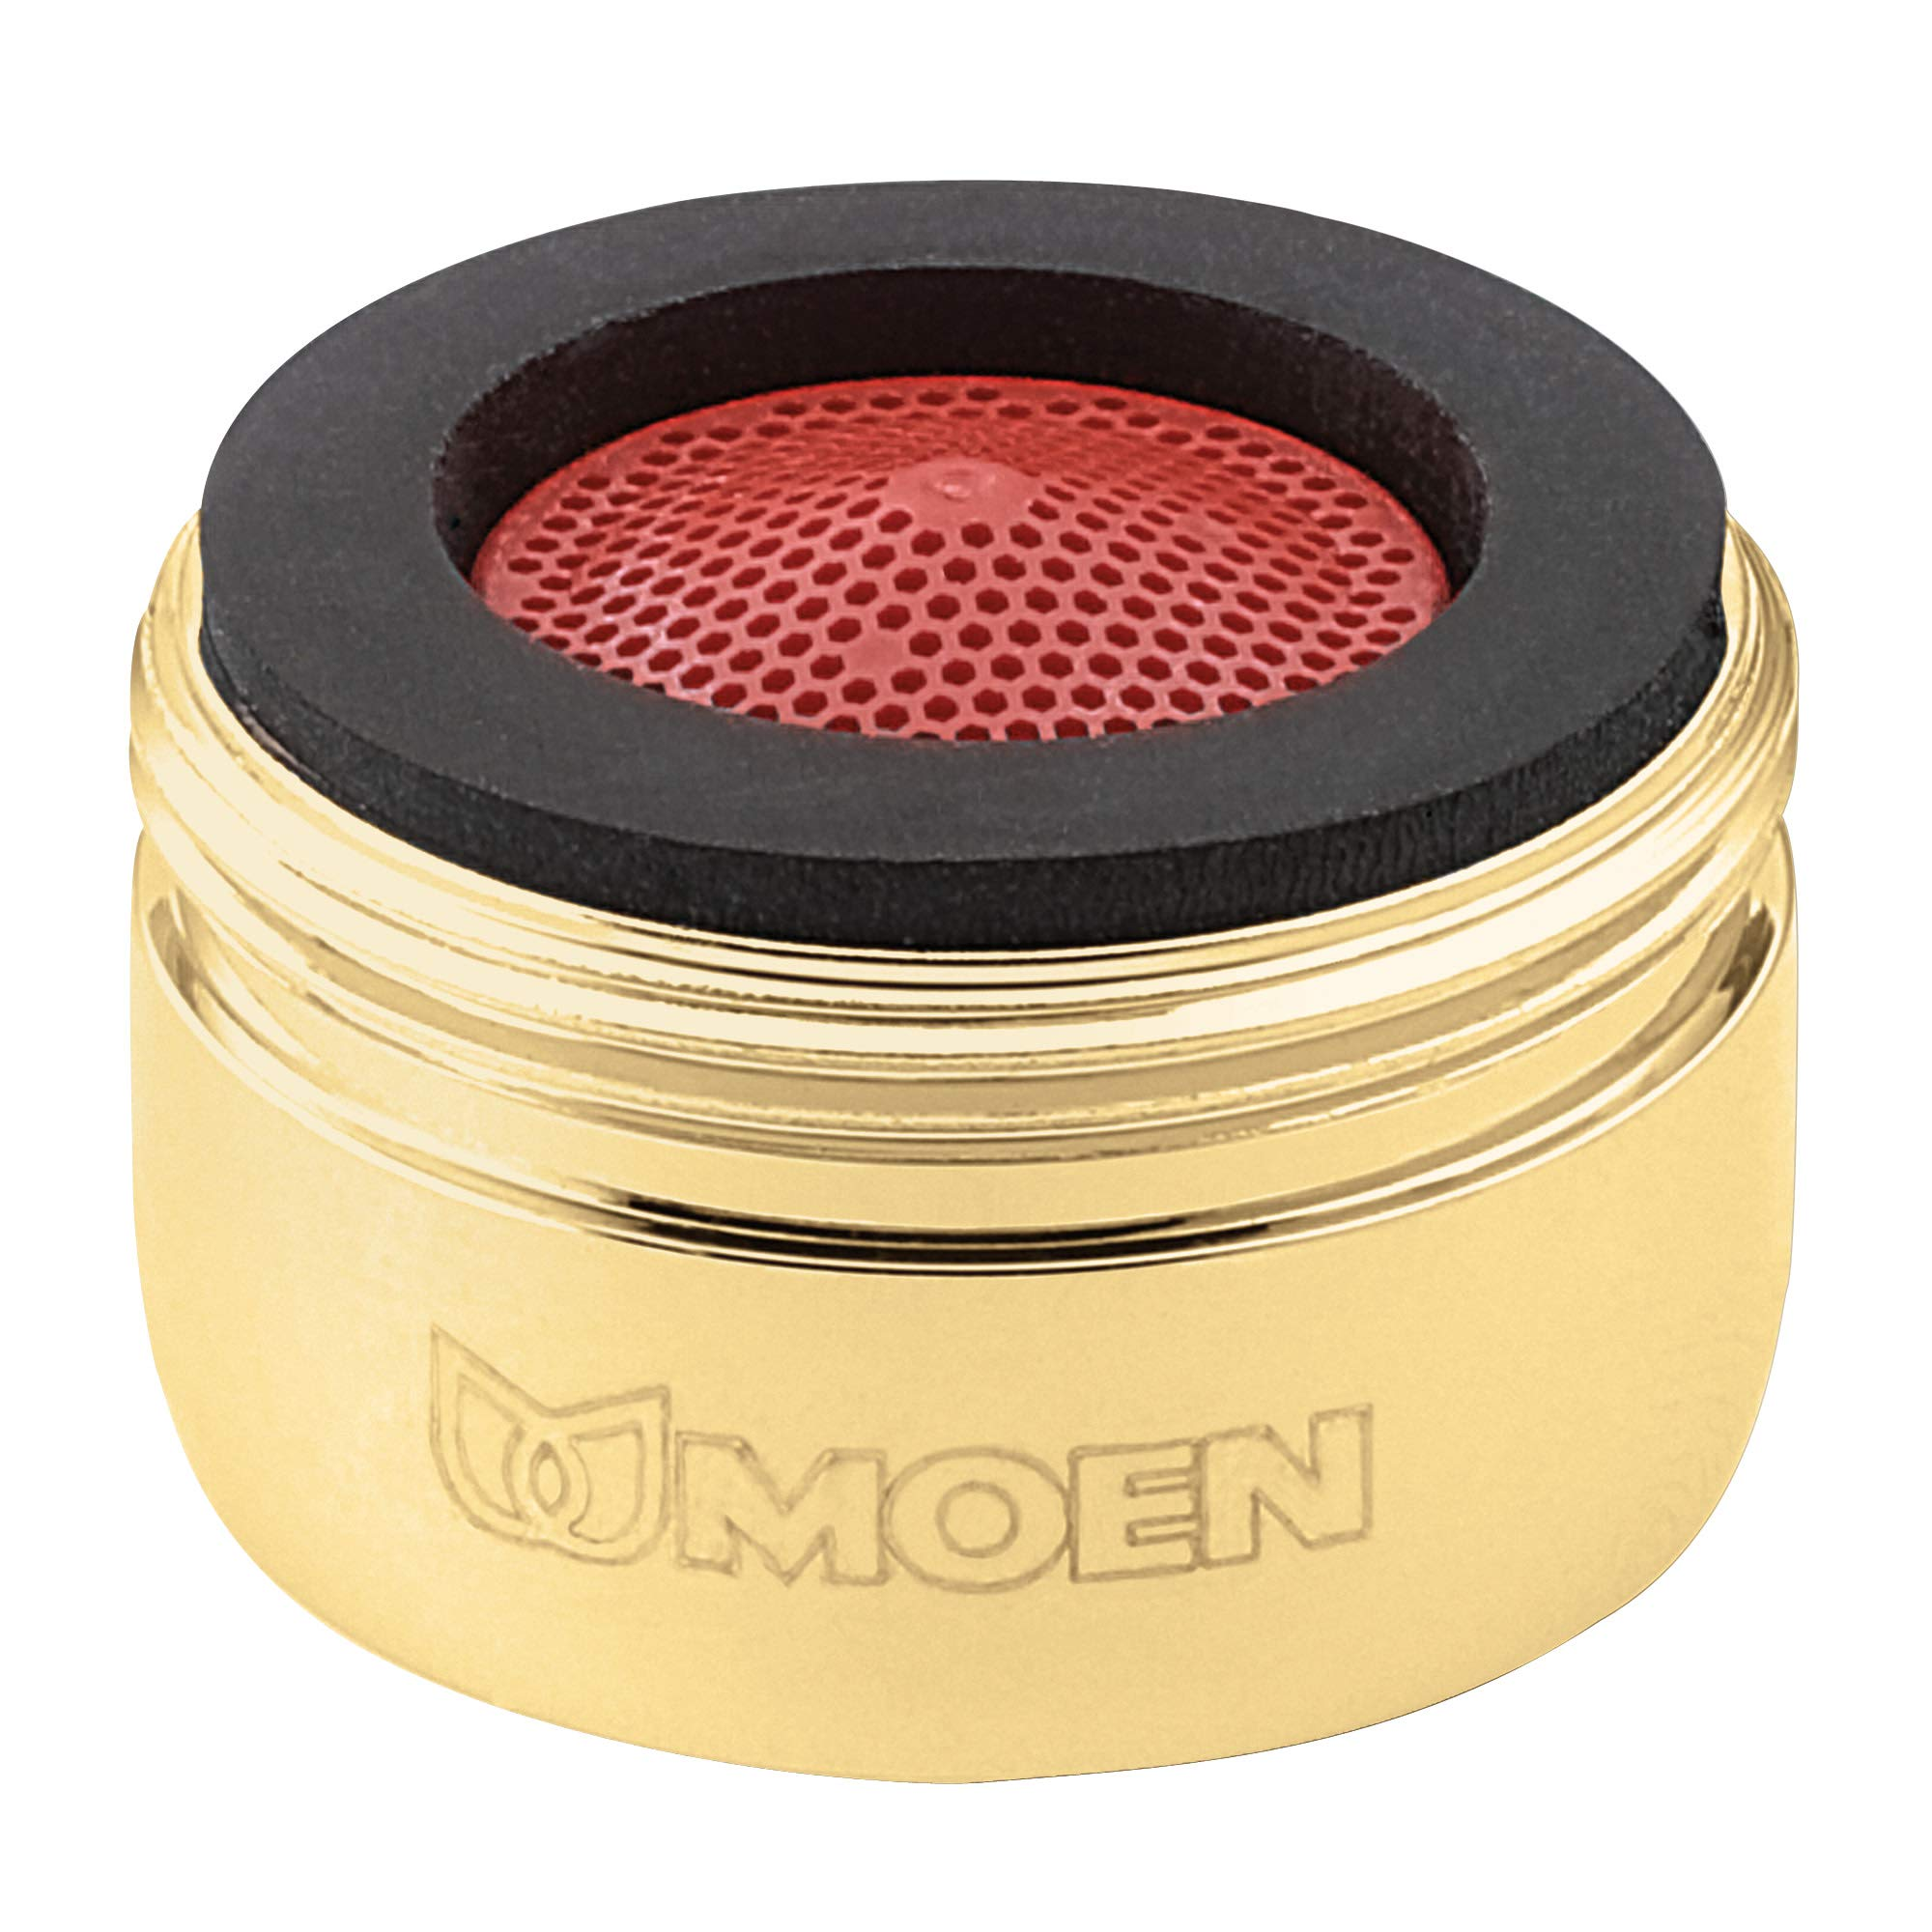 Moen 3919P Aerator, 2.2 GPM, Male Thread, Polished Brass by Moen